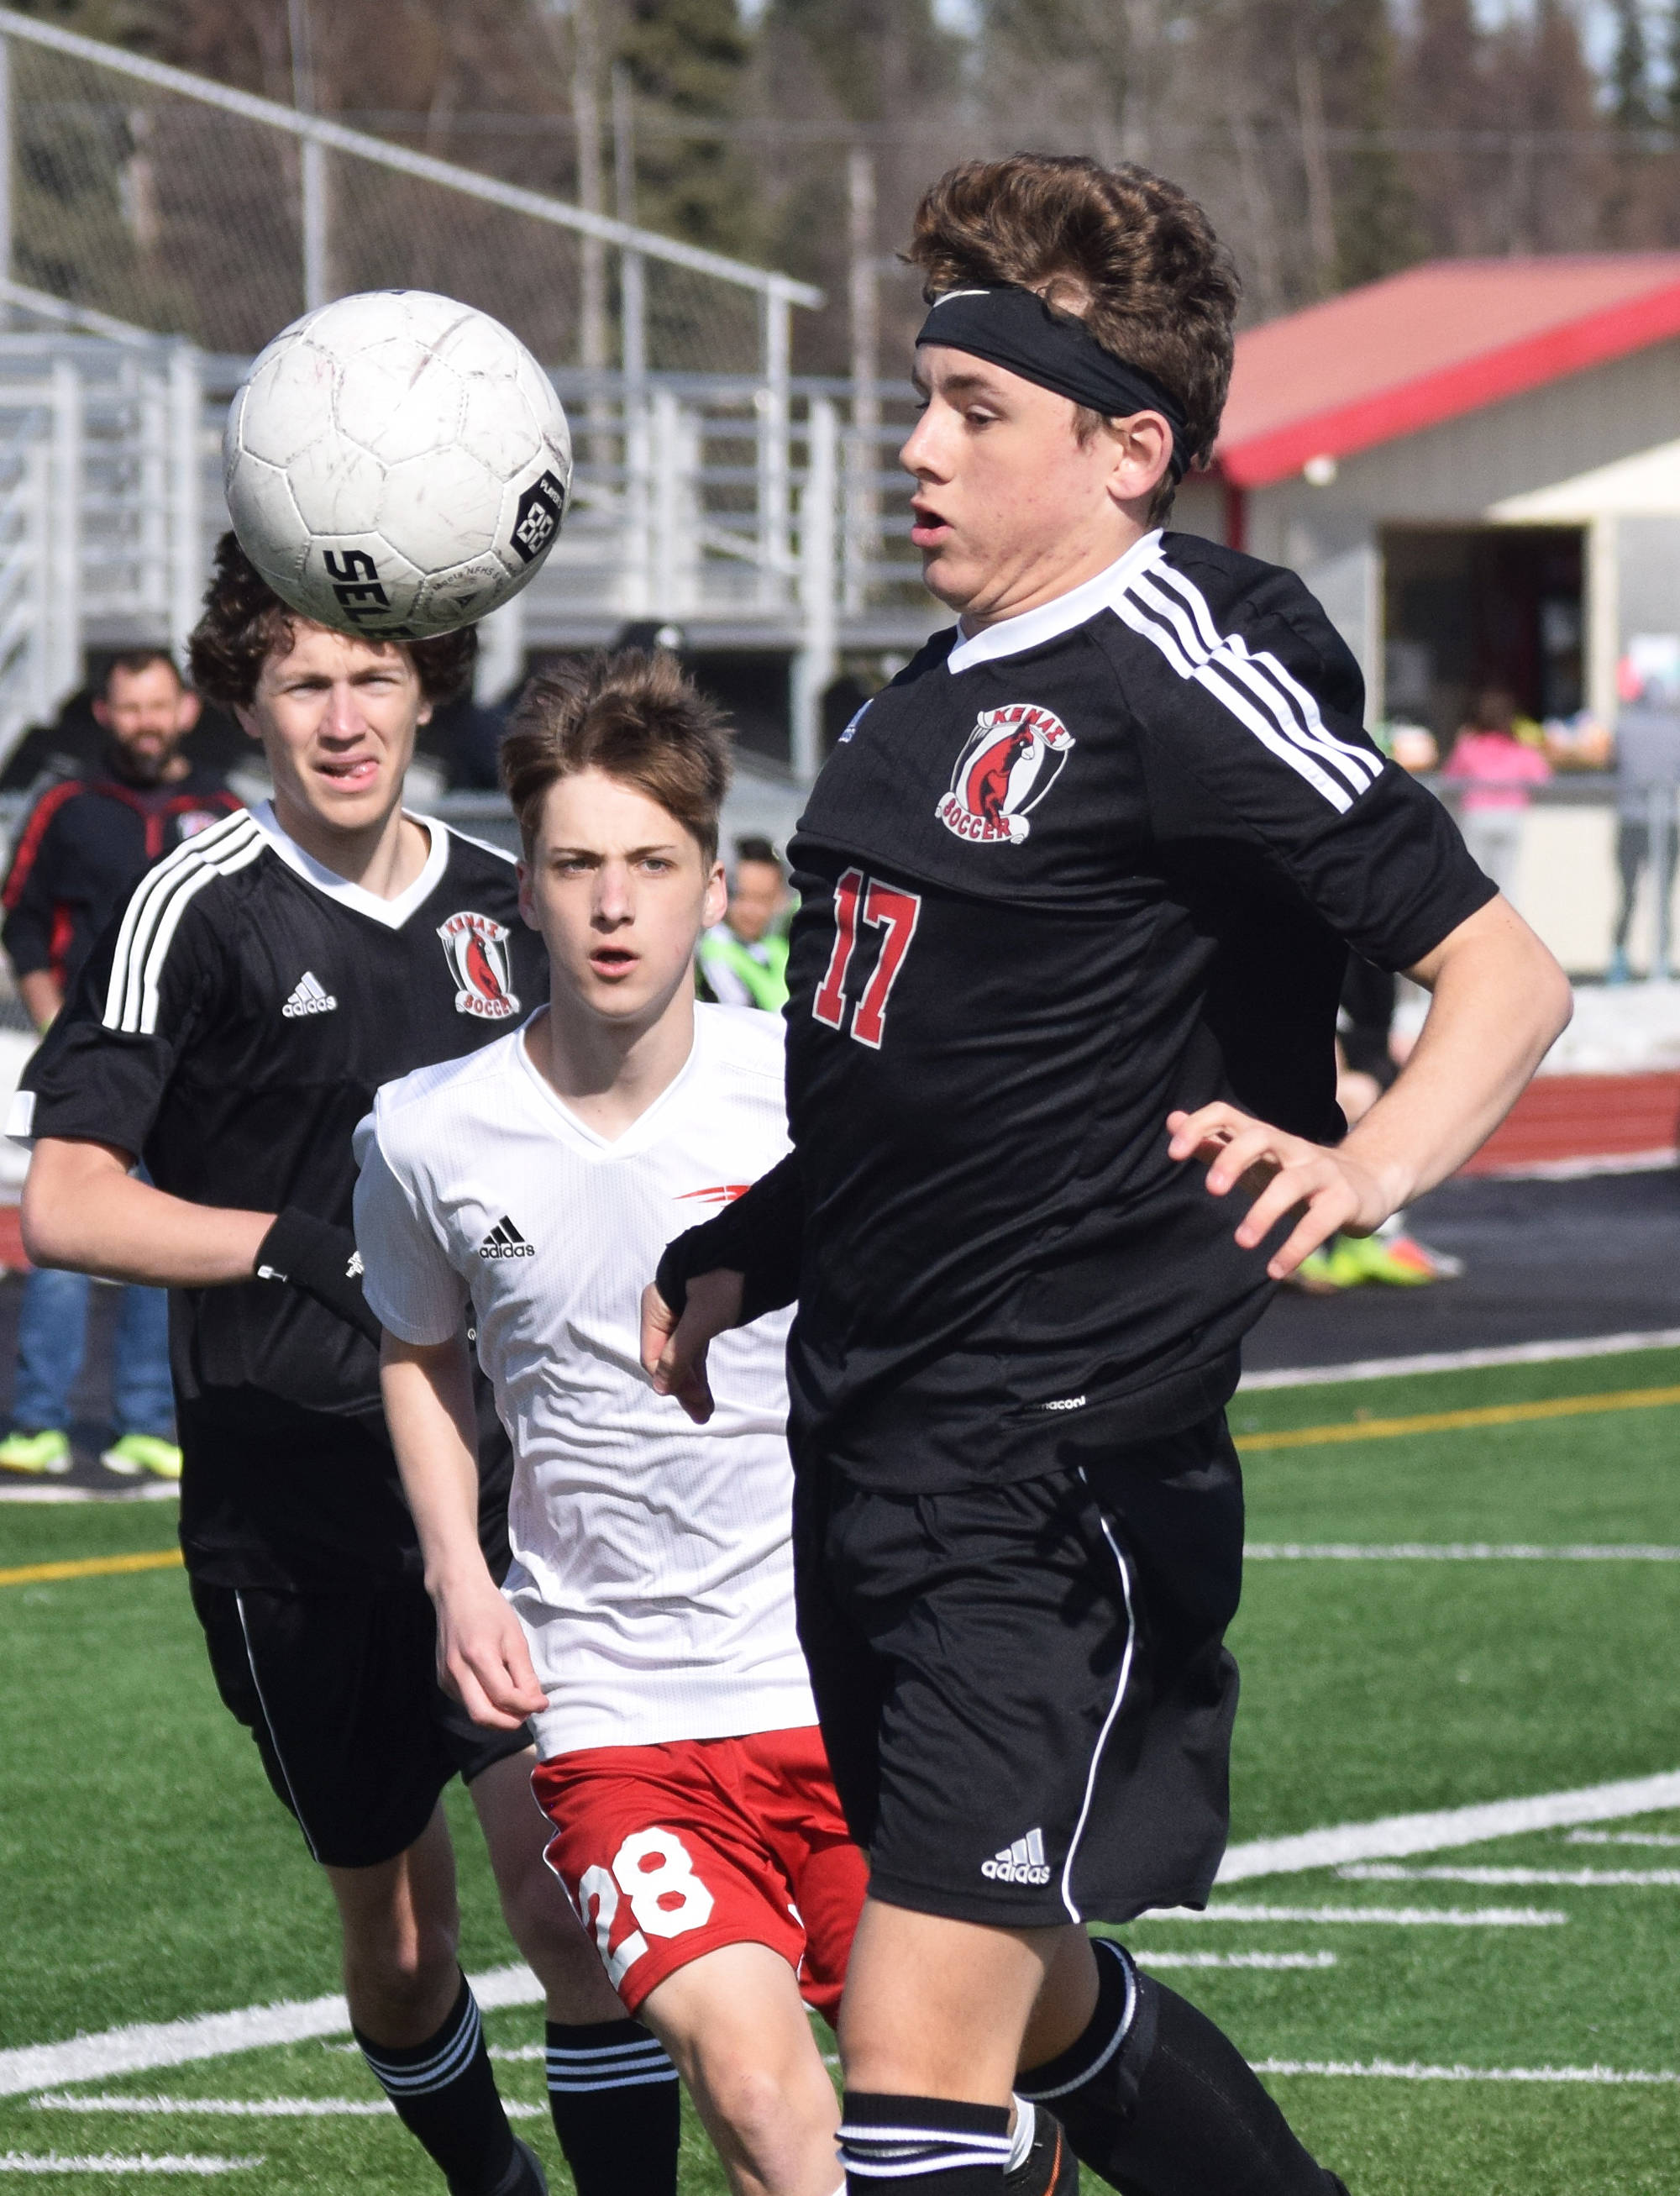 Kenai's Travis Verkuilen (17) gets his chest on a ball Saturday, April 13, 2019, in a nonconference game against North Pole at Kenai Central High School. (Photo by Joey Klecka/Peninsula Clarion)